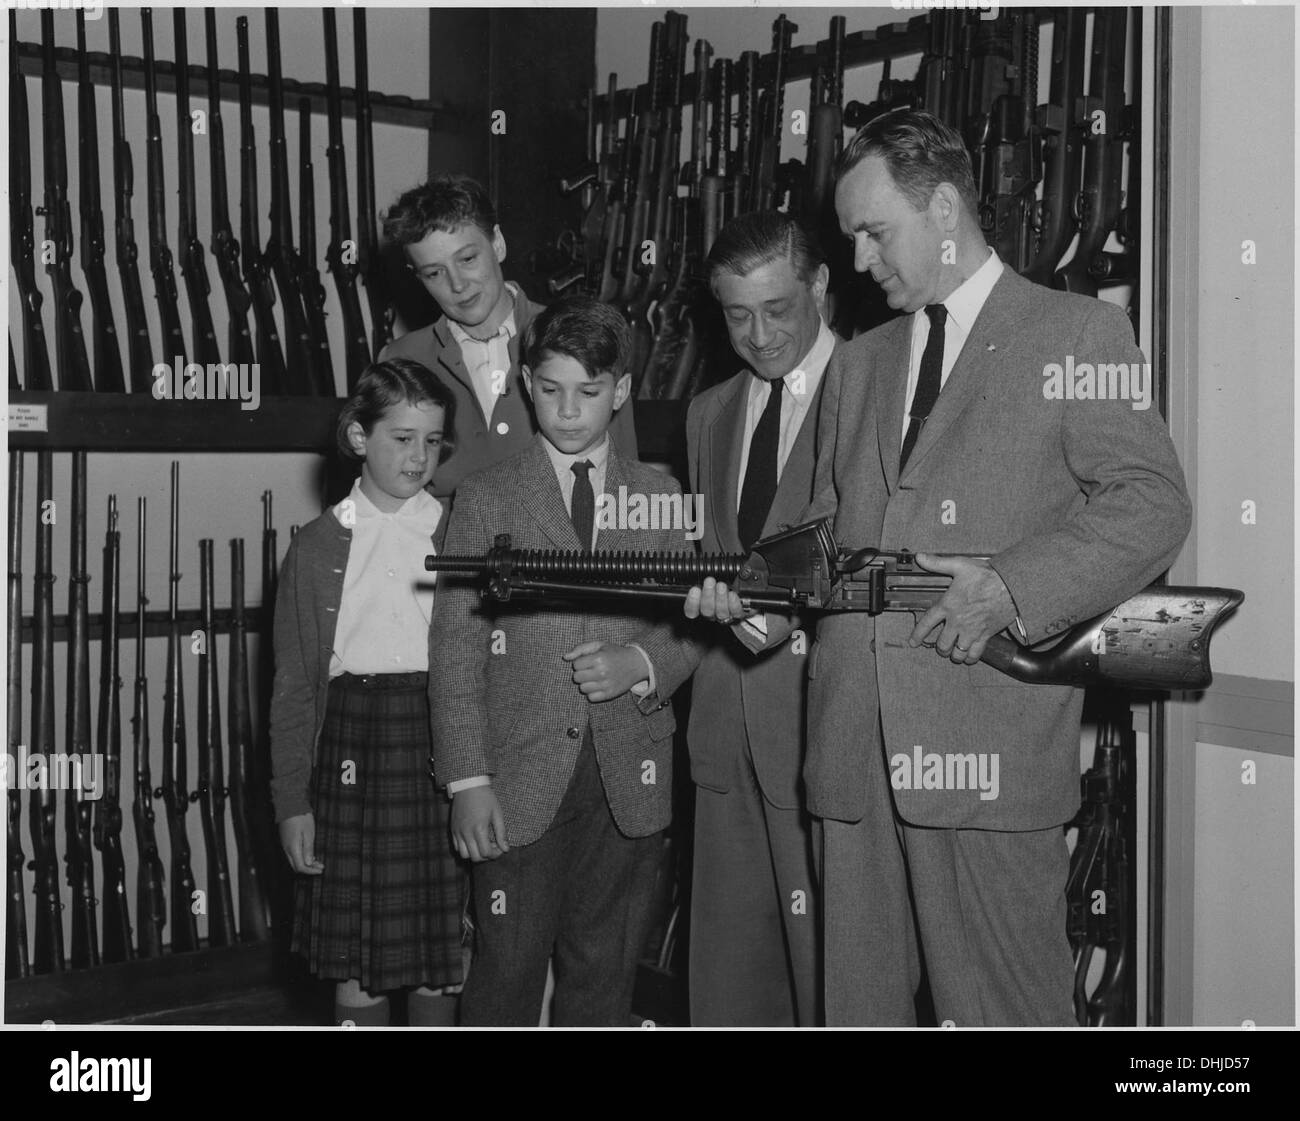 Carl Mydans, who is on the photographic staff of Life magazine, visited FBI Headquarters with his family and was. 518188 - Stock Image